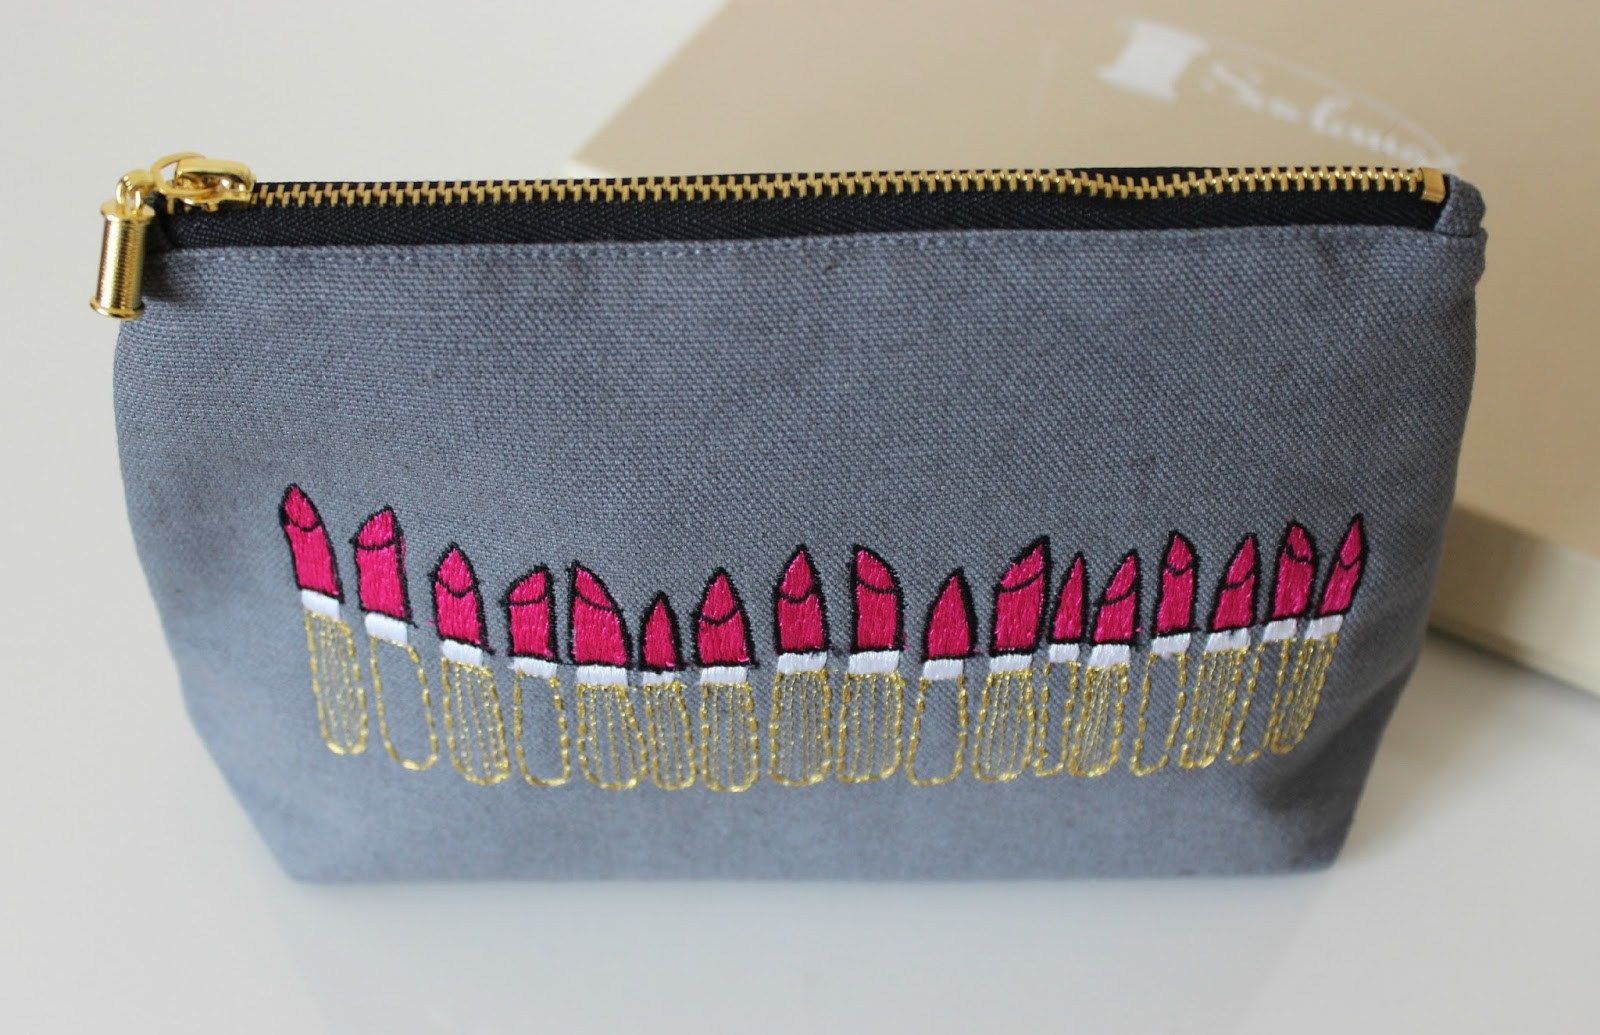 A picture of the Sewlomax Twilight Lipstick Pouch